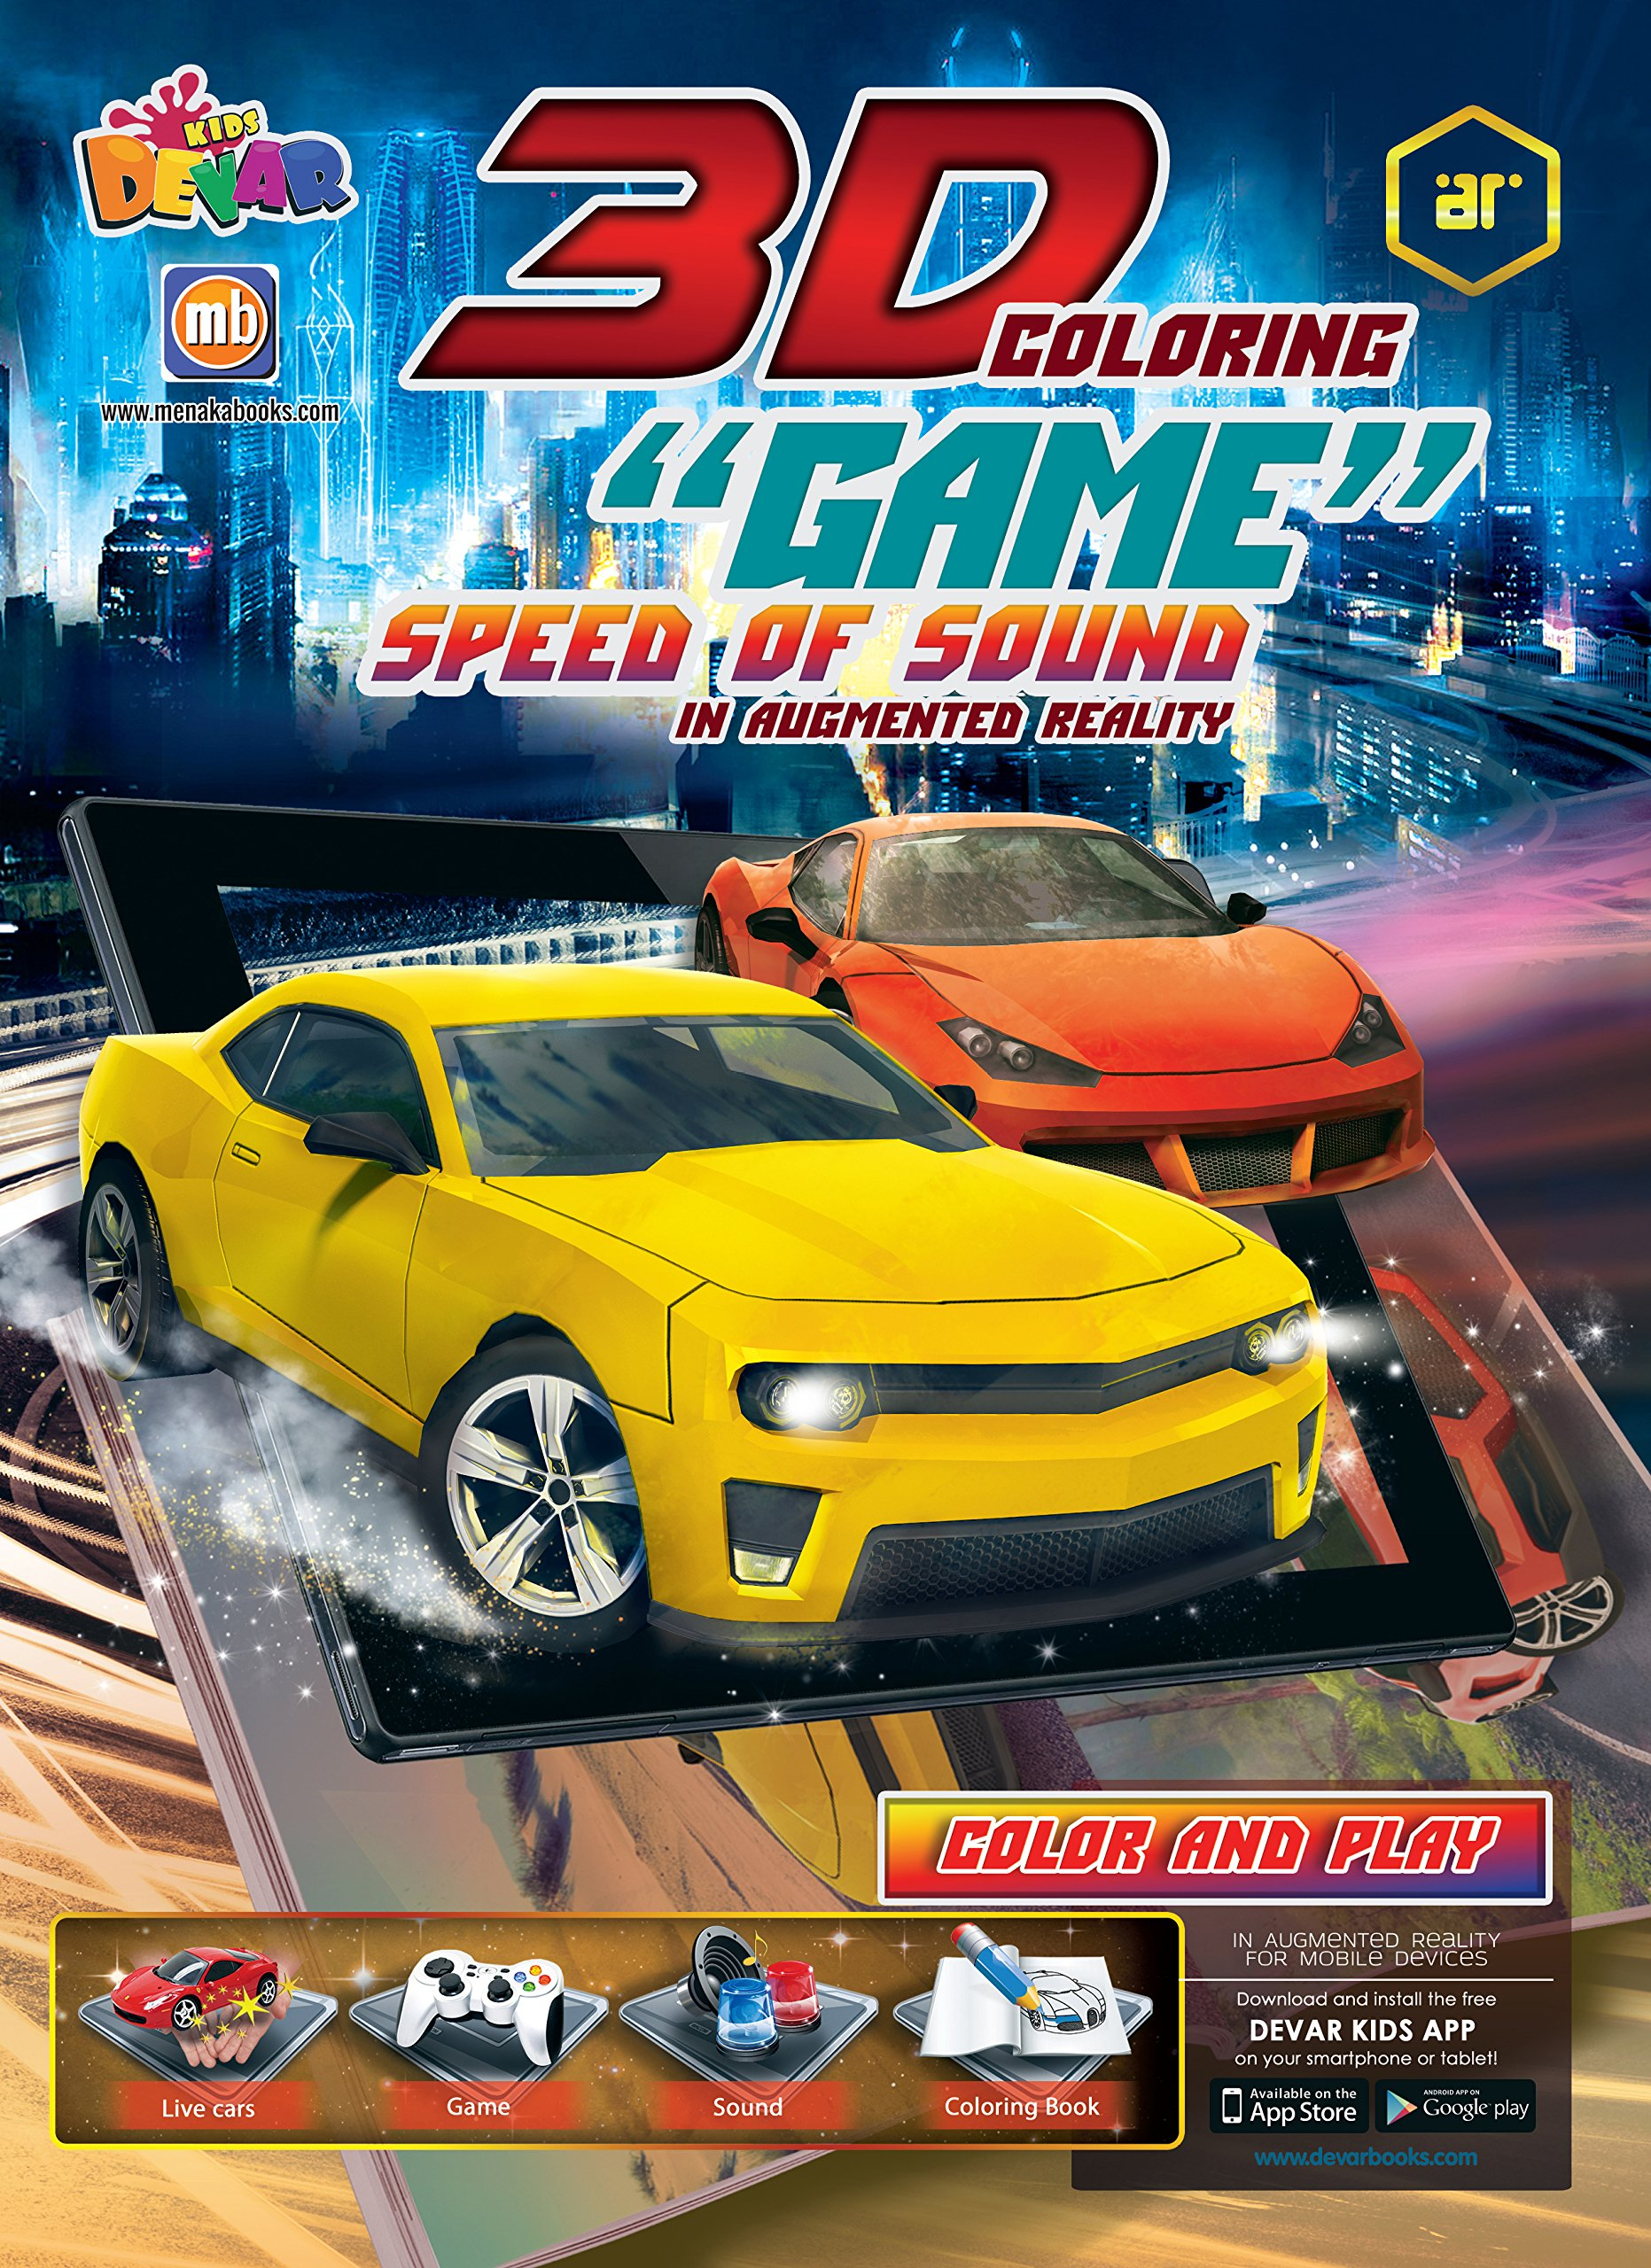 Coloring games to play for free - Buy 3d Coloring Game Speed Of Sound Book Online At Low Prices In India 3d Coloring Game Speed Of Sound Reviews Ratings Amazon In